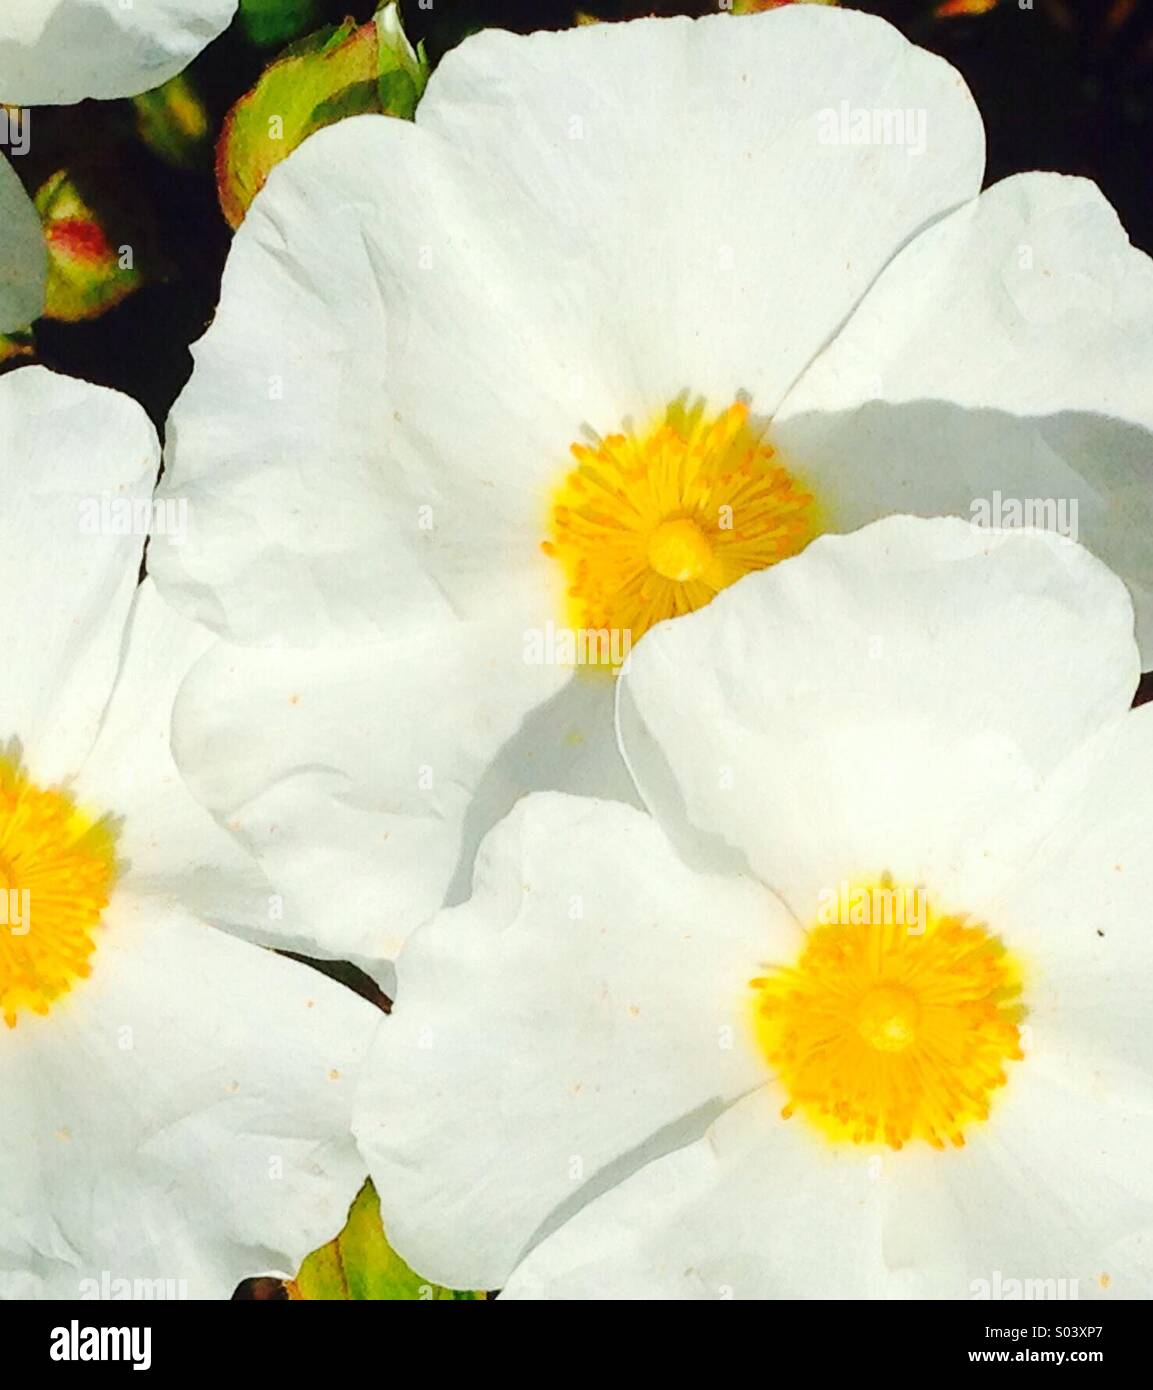 White flowers with yellow centers stock photos white flowers with white flowers close up with yellow centers stock image mightylinksfo